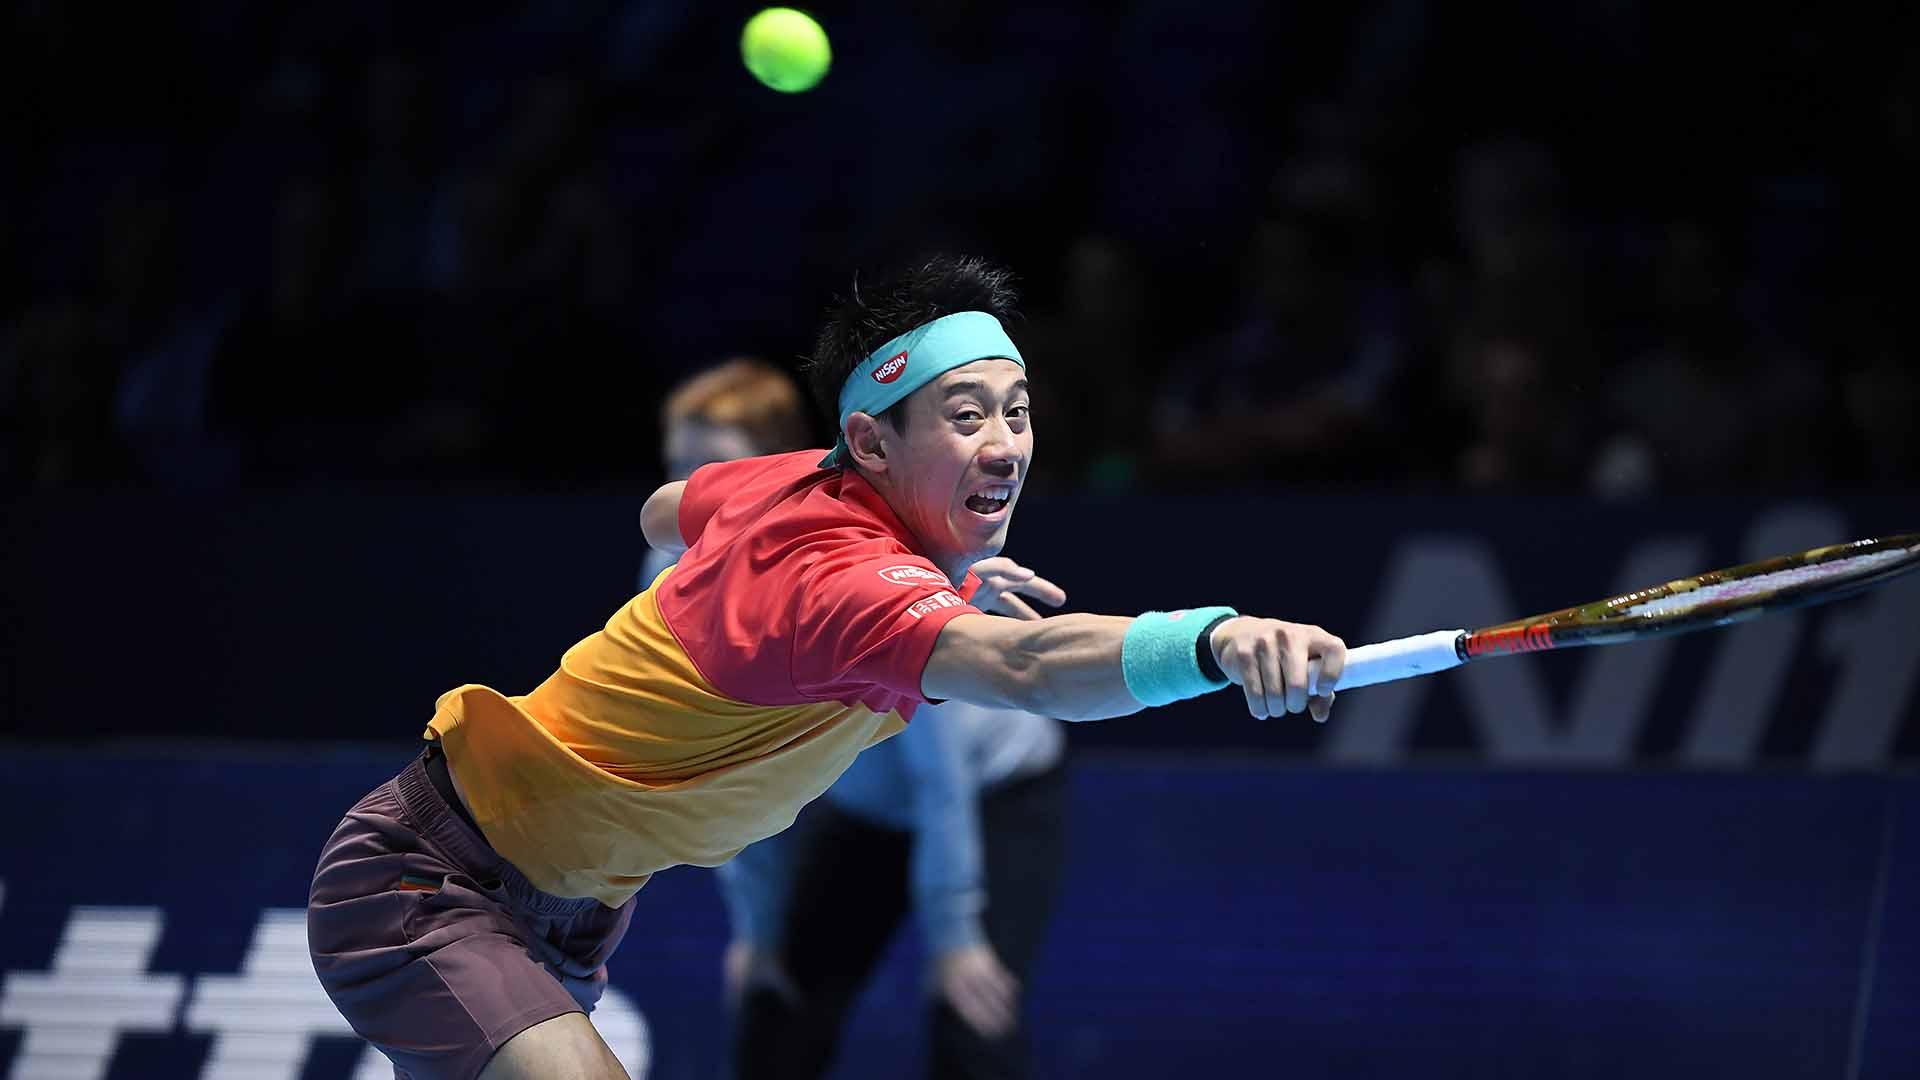 06 Nishikori Nitto ATP Finals 2018 Tuesday Stretch